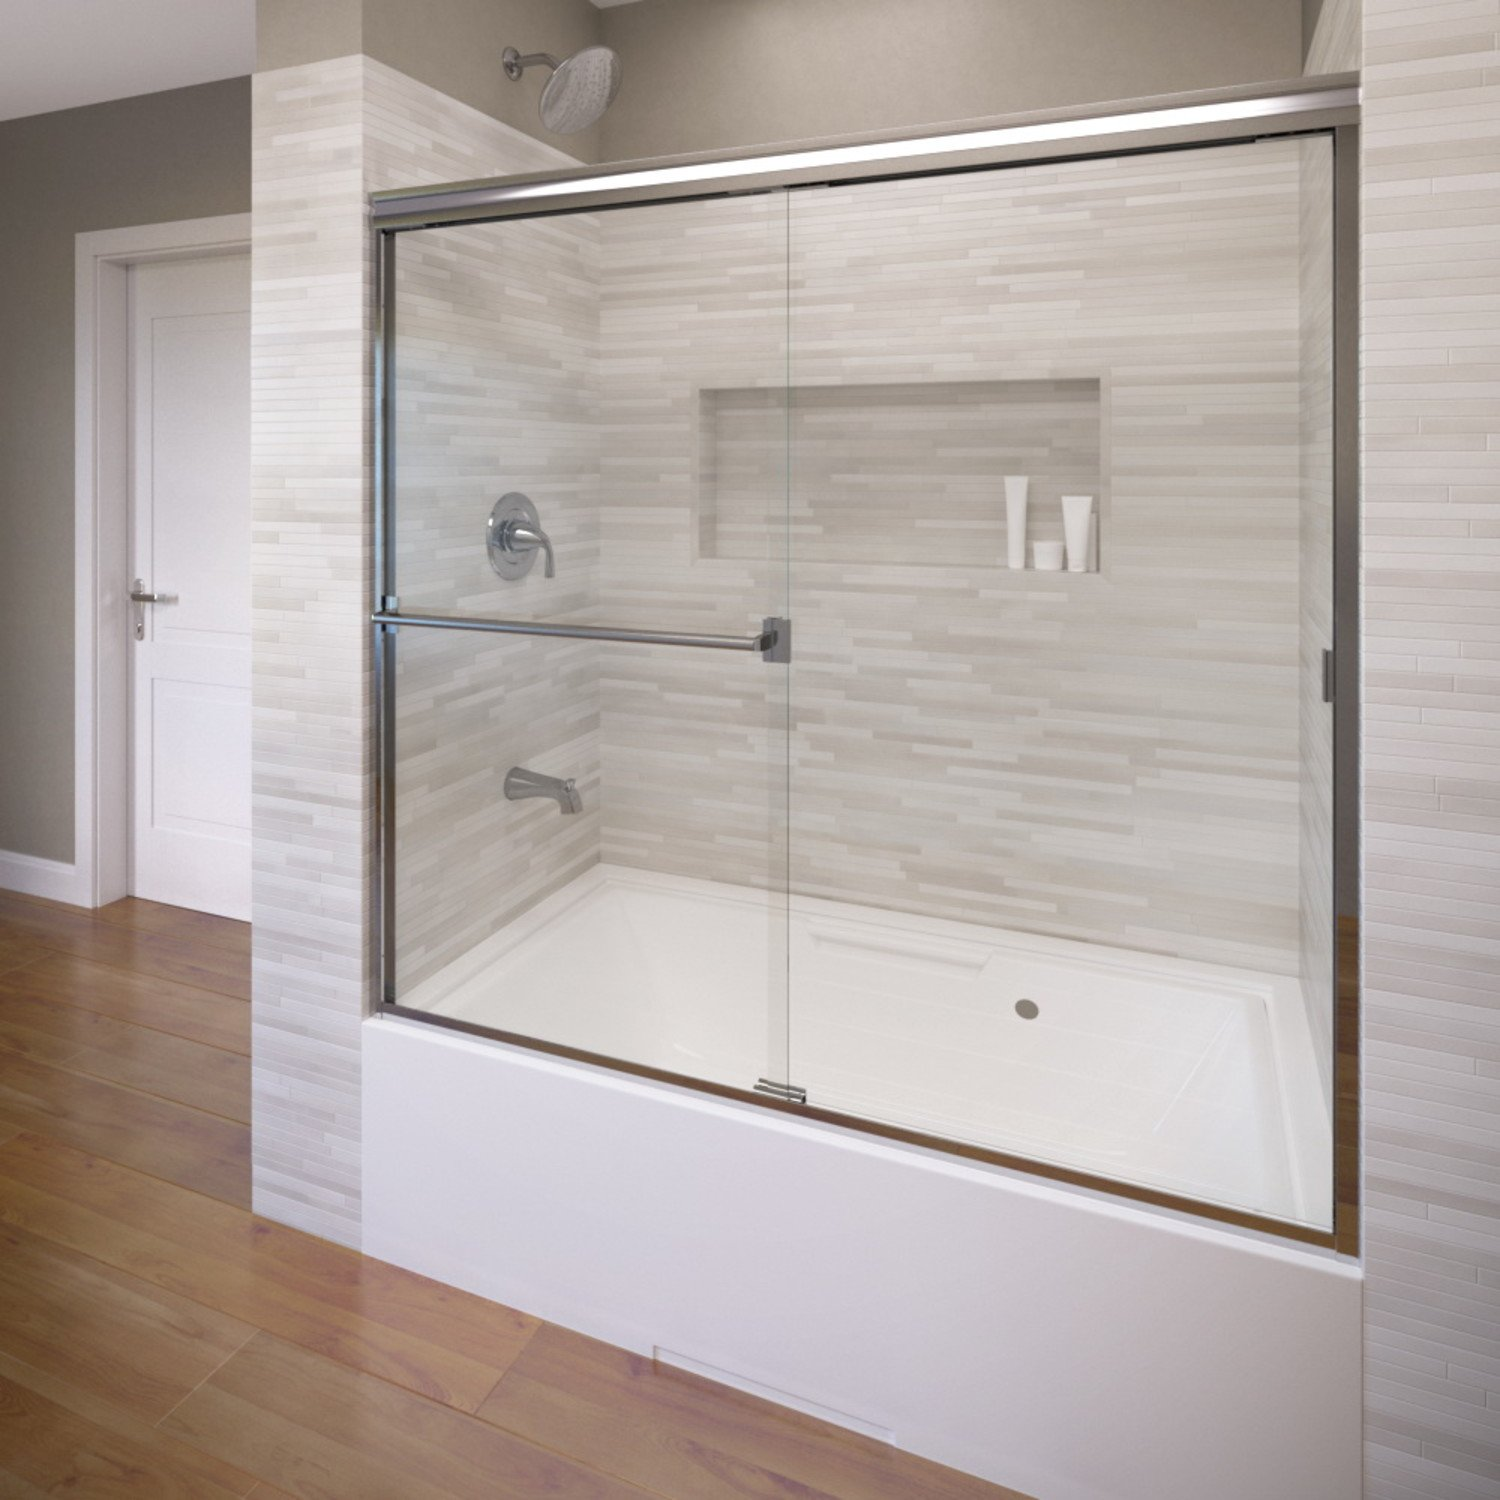 Basco Classic Semi-Frameless Sliding Tub Door, Fits 56-60 inch opening, Clear Glass, Silver Finish